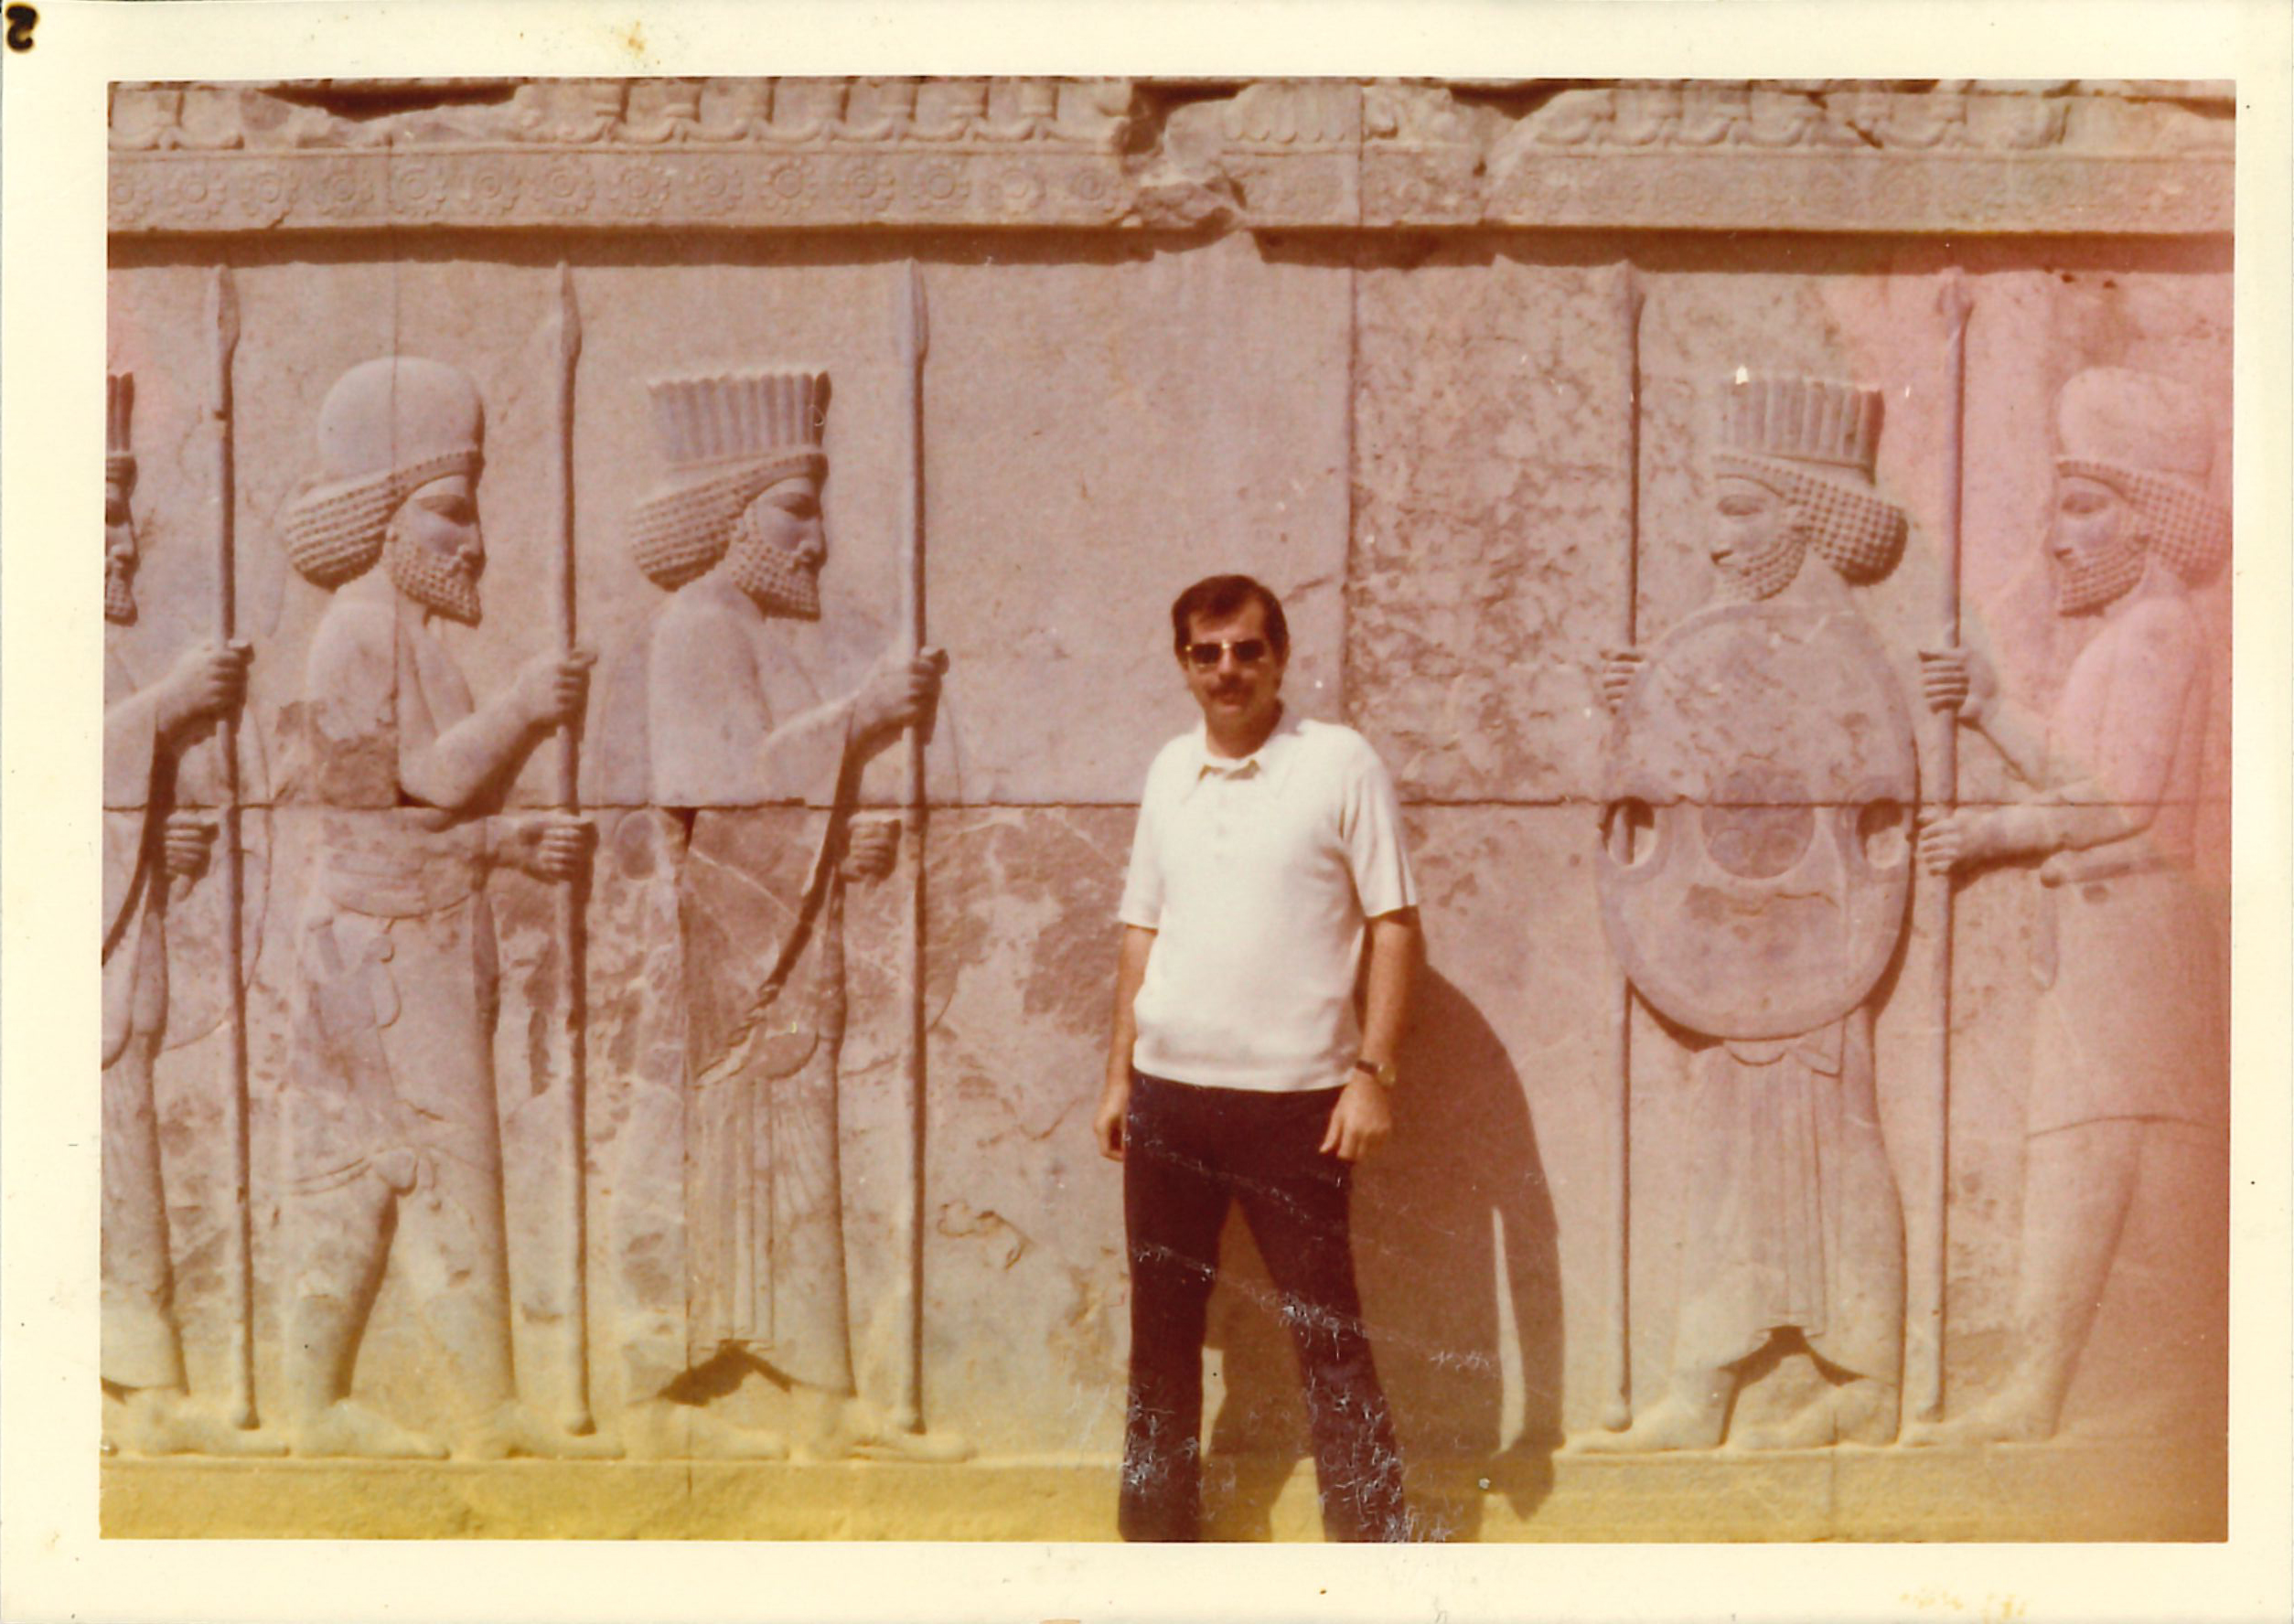 Orr on a visit to Persepolis in Iran.